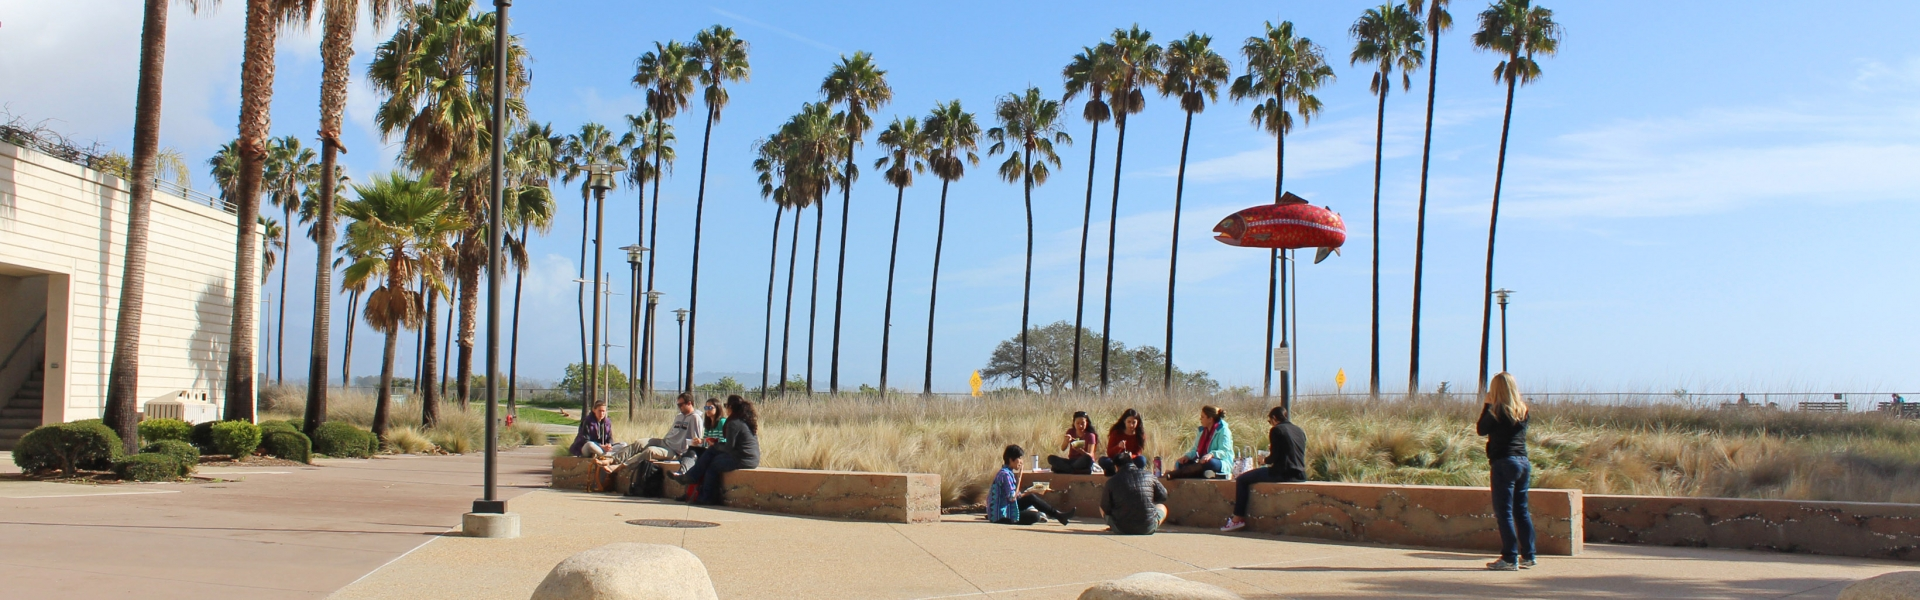 Wide view of a courtyard where students are sitting outdoors